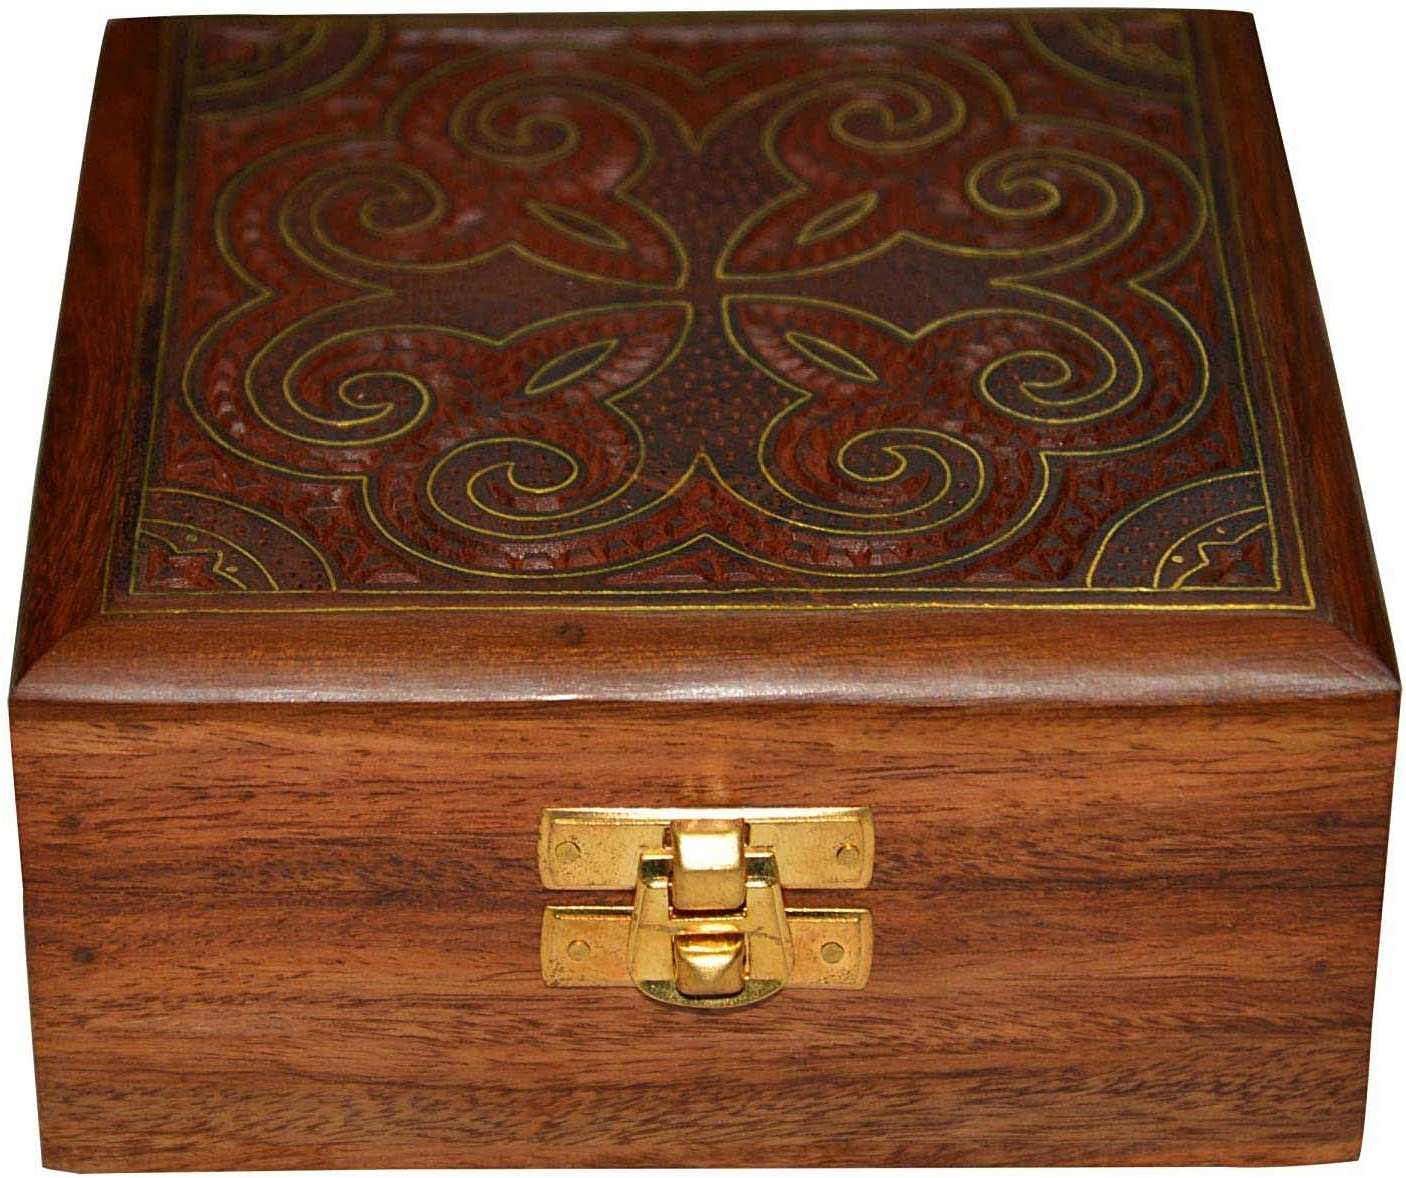 Indian Handicrafts Export DronaCraft Jewellery Box Square Shape Wood Carving with Floral Brass Inlay Design: Amazon.es: Hogar